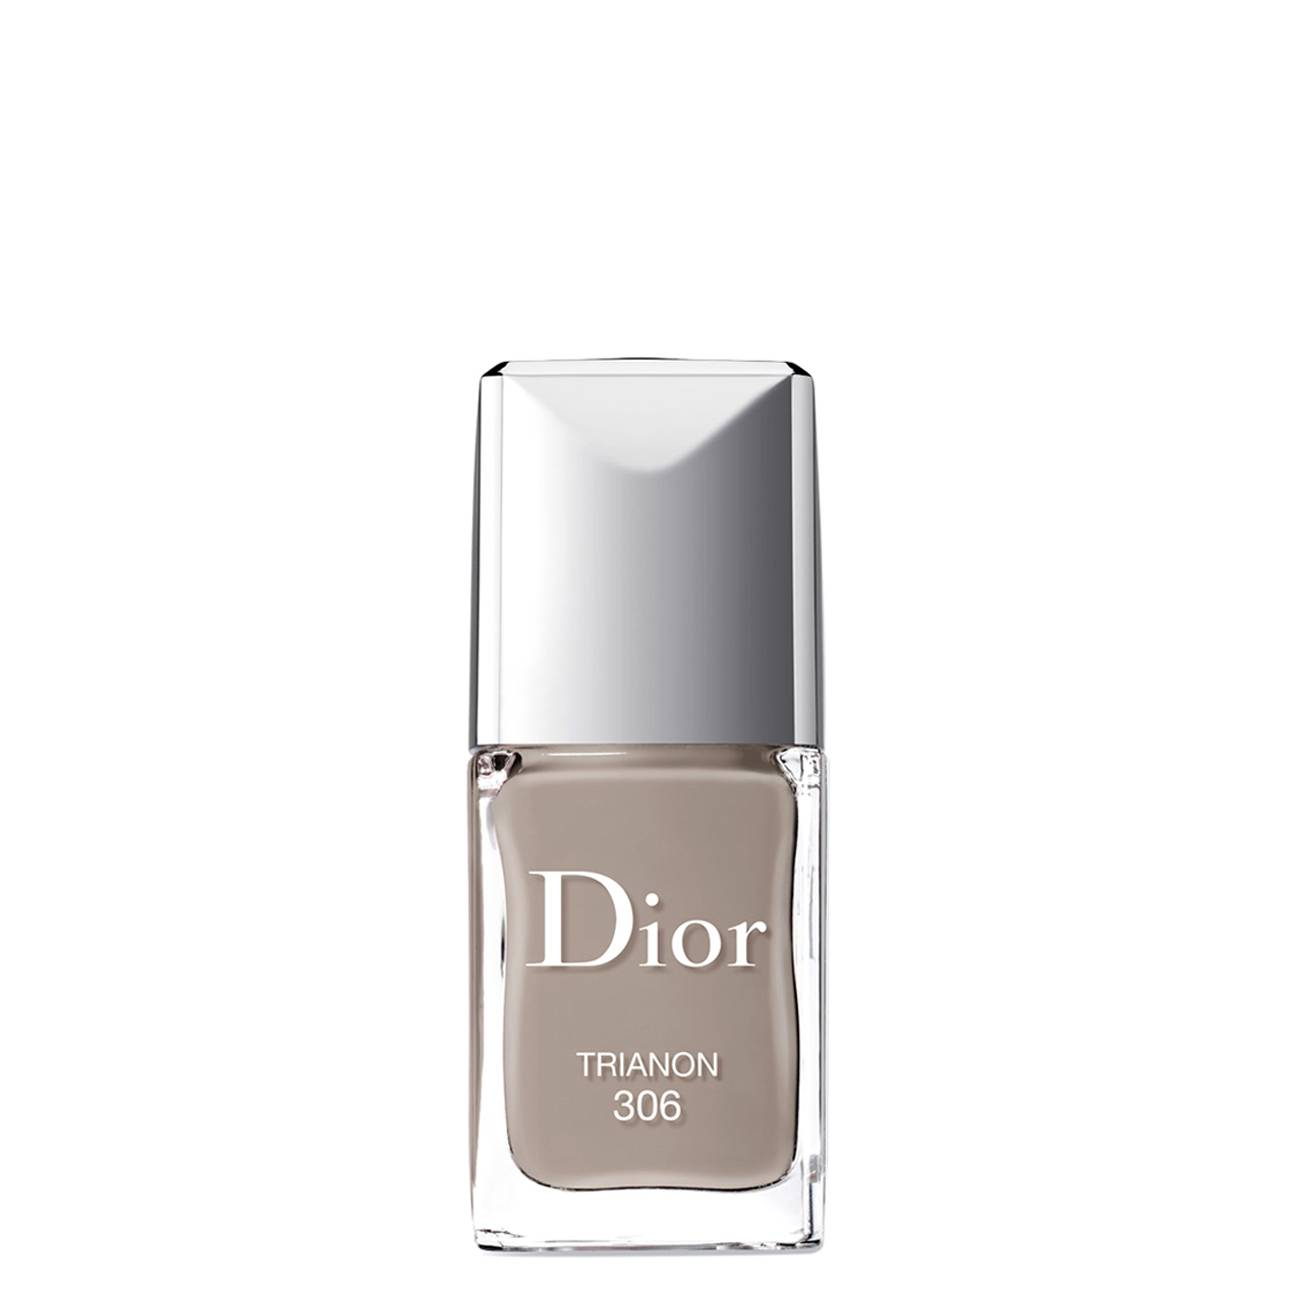 Vernis 306 10 Ml Dior imagine 2021 bestvalue.eu